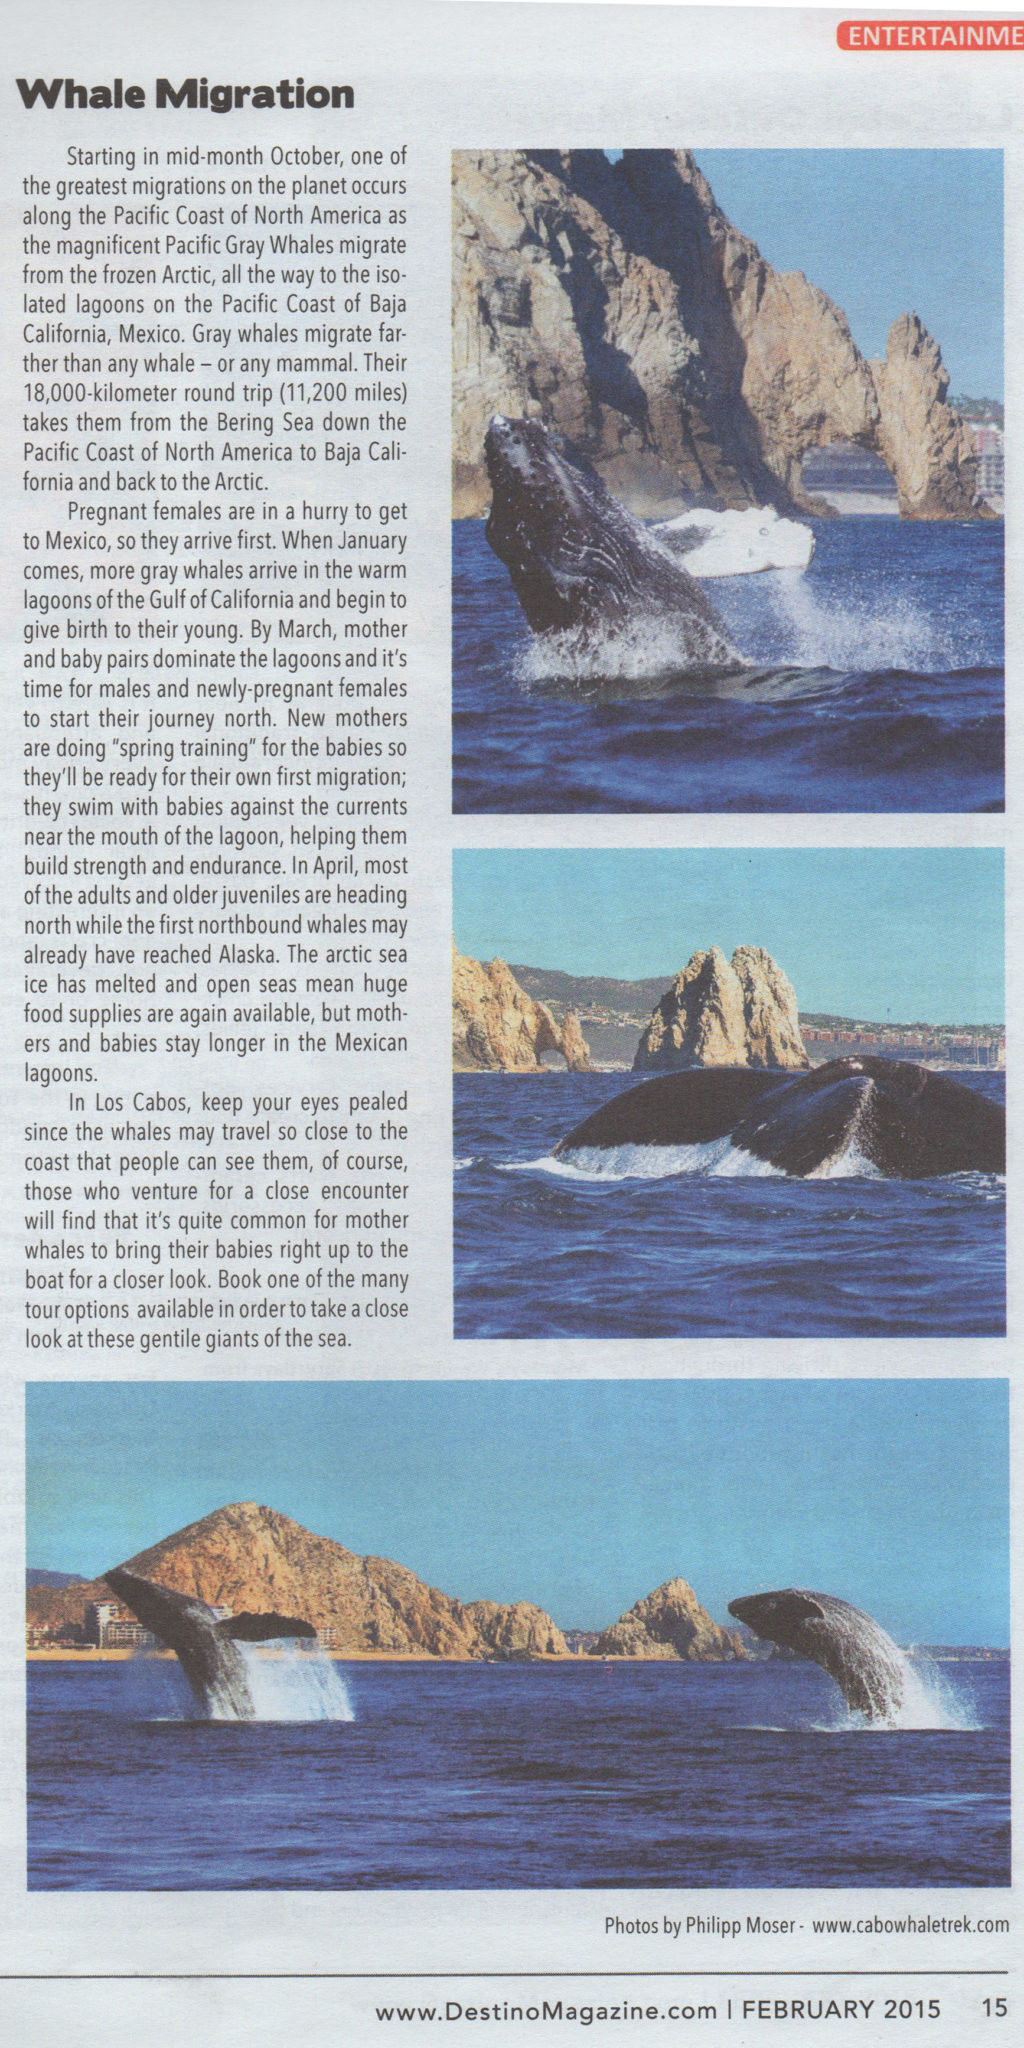 Destino Magazine Feb 2015_CaboTrek